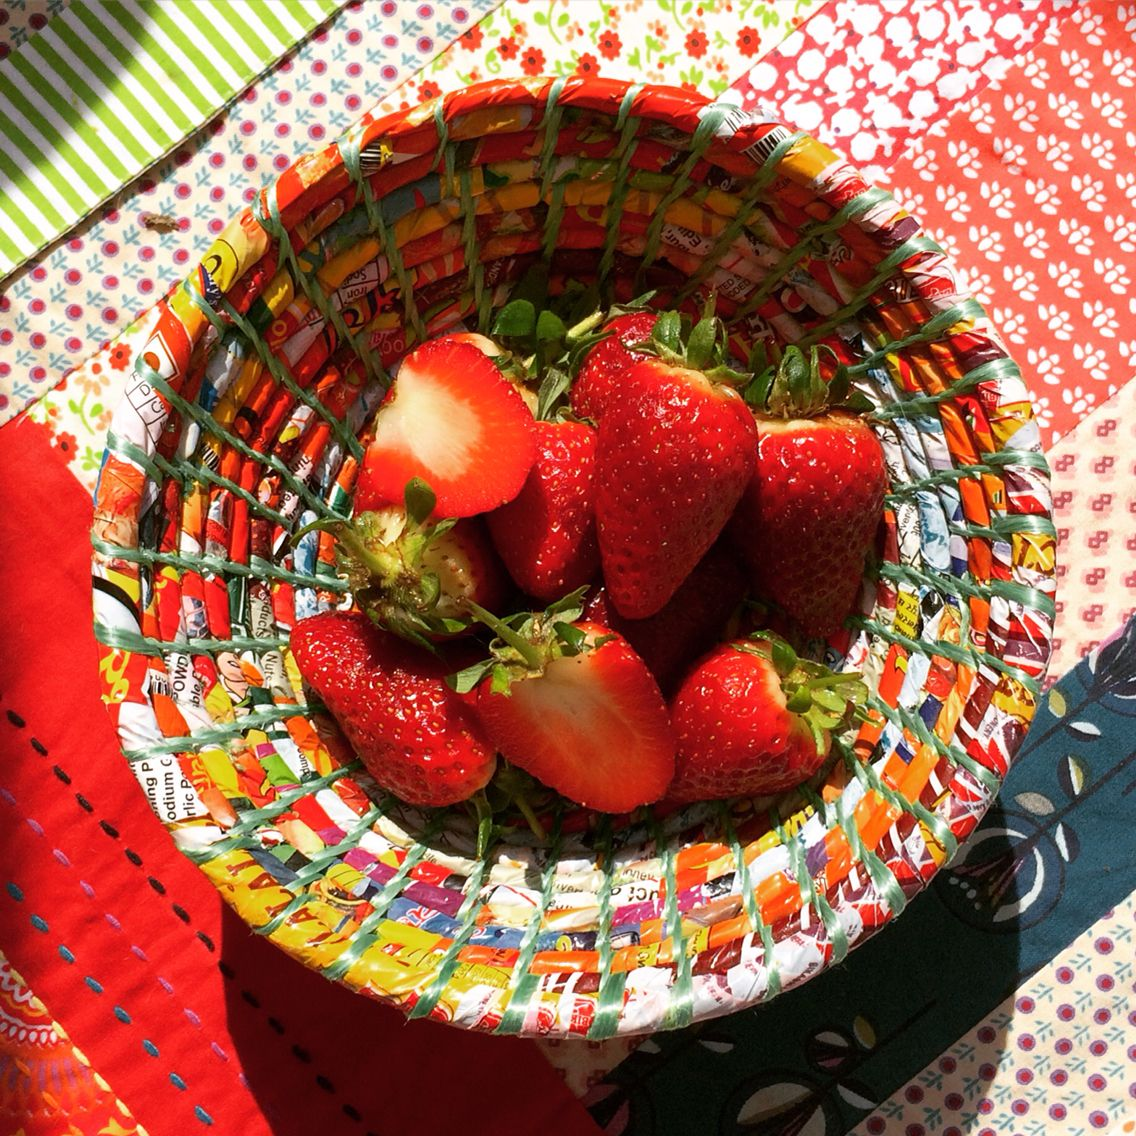 Strawberries in a bowl made from recycled sweet wrappers